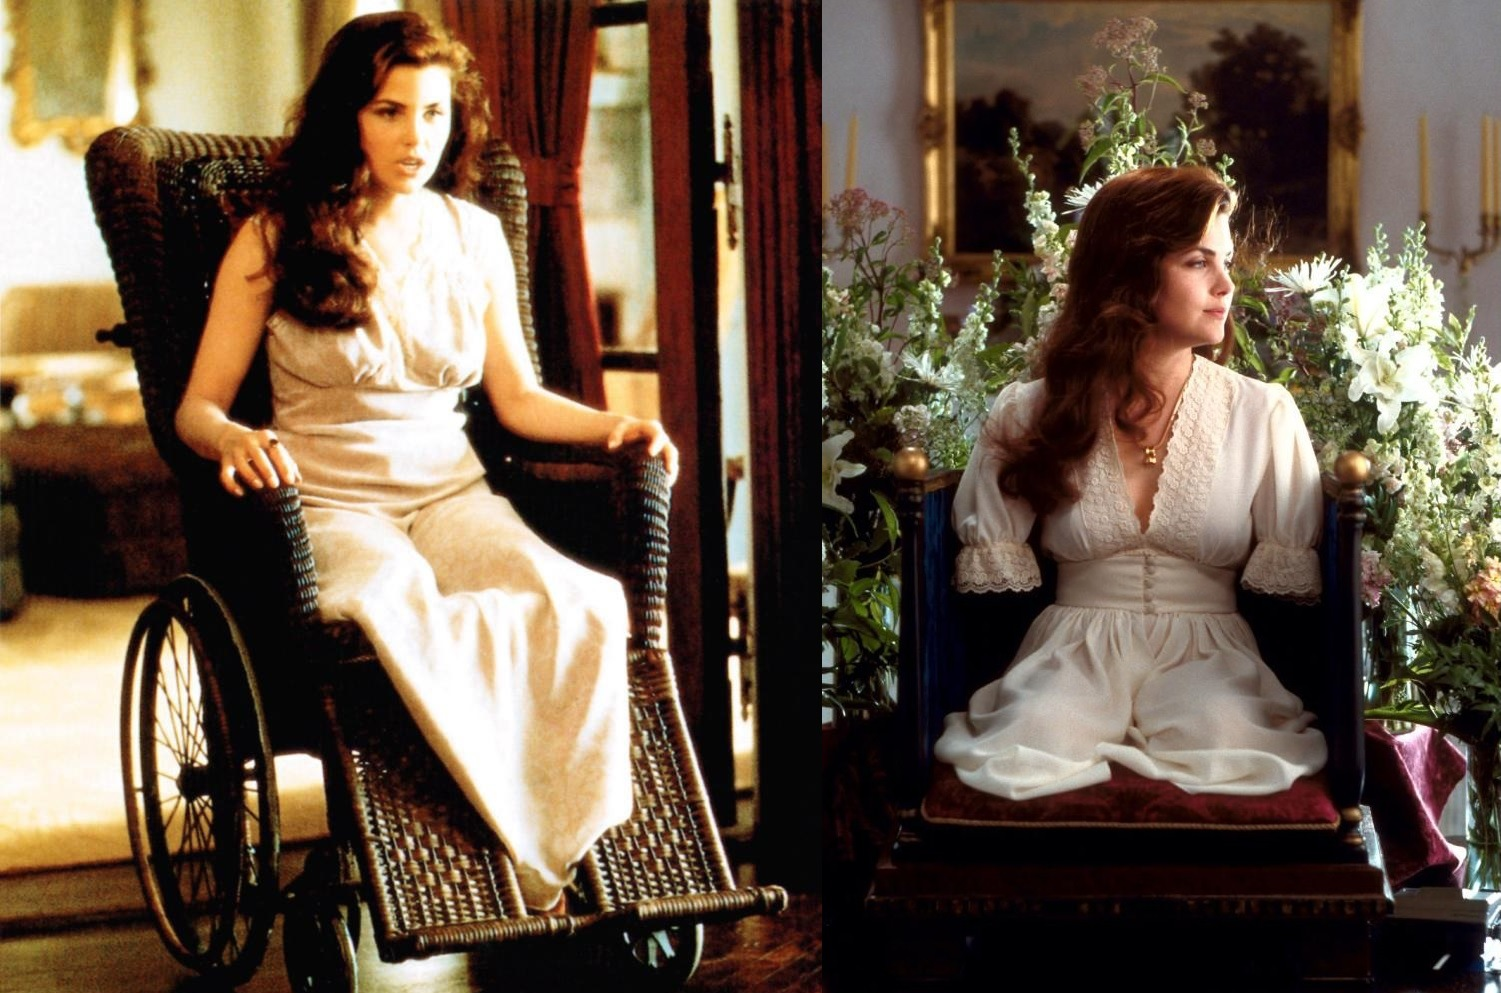 Sherilyn Fenn in a progressive state of amputation in Boxing Helena (1993)